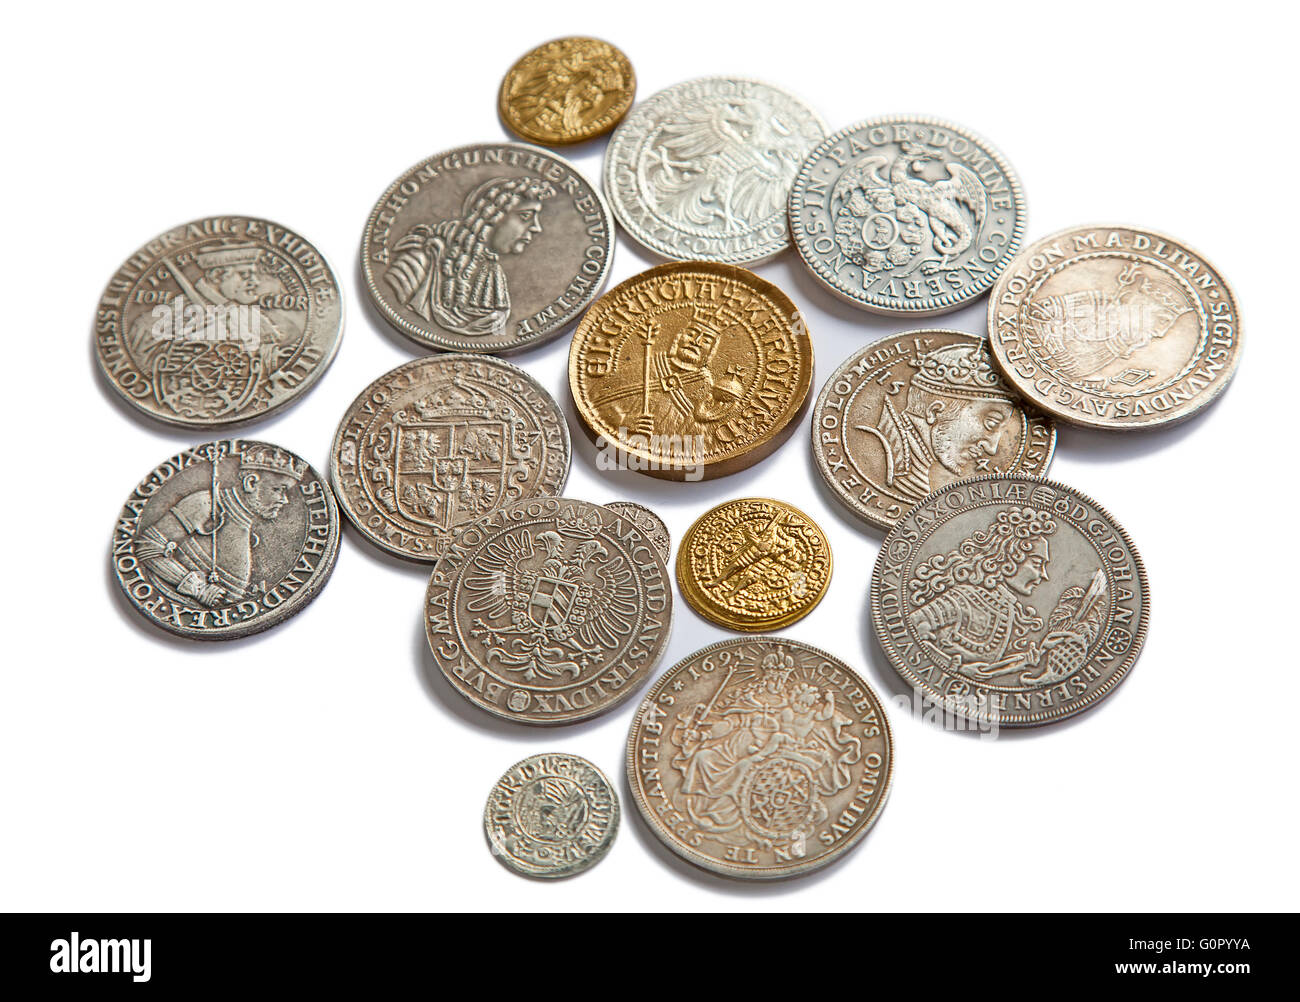 Collection of the medieval coins on the white background - Stock Image